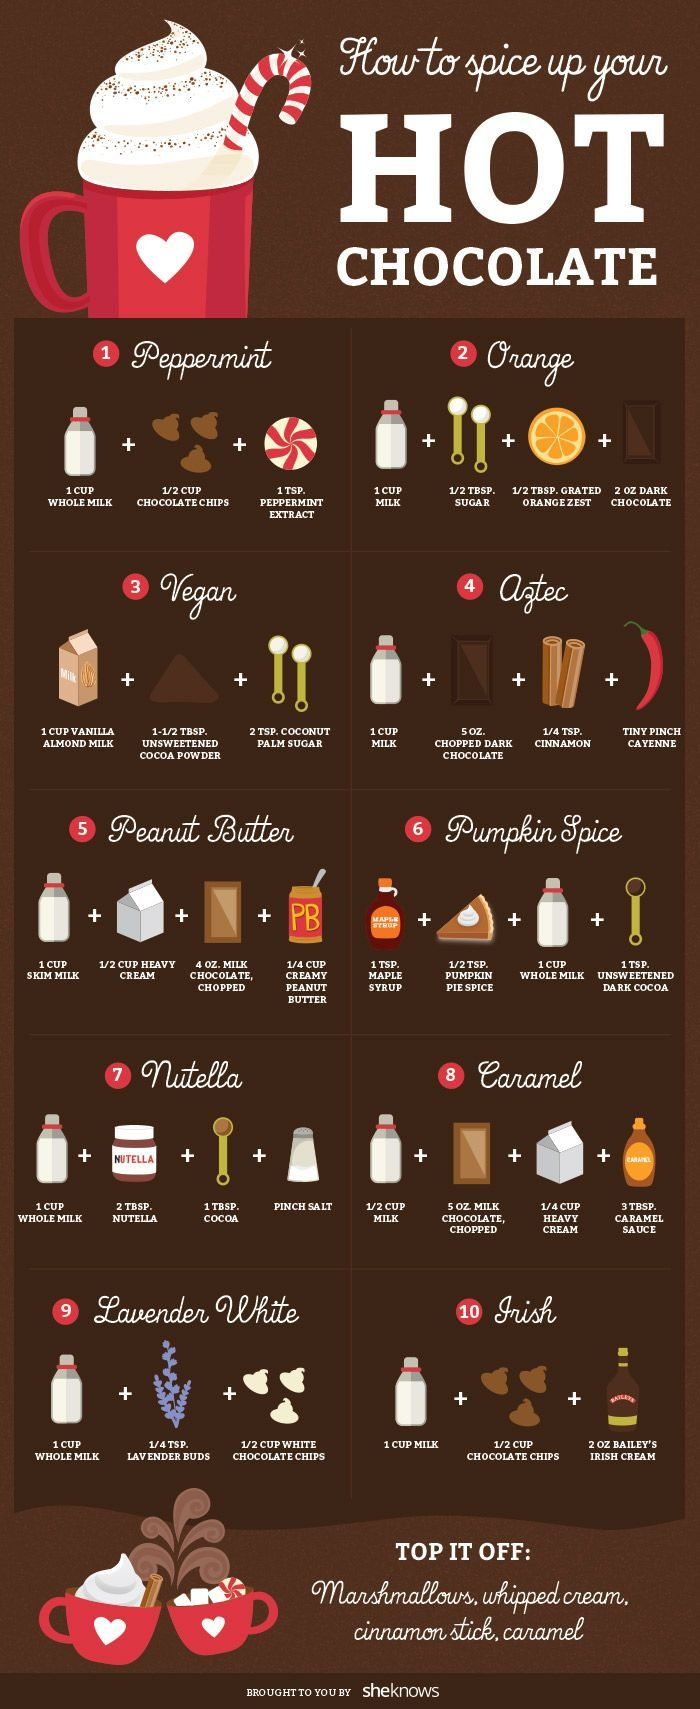 Great flavor pairings for your hot chocolate this winter! Courtesy of @huffingtonpost.